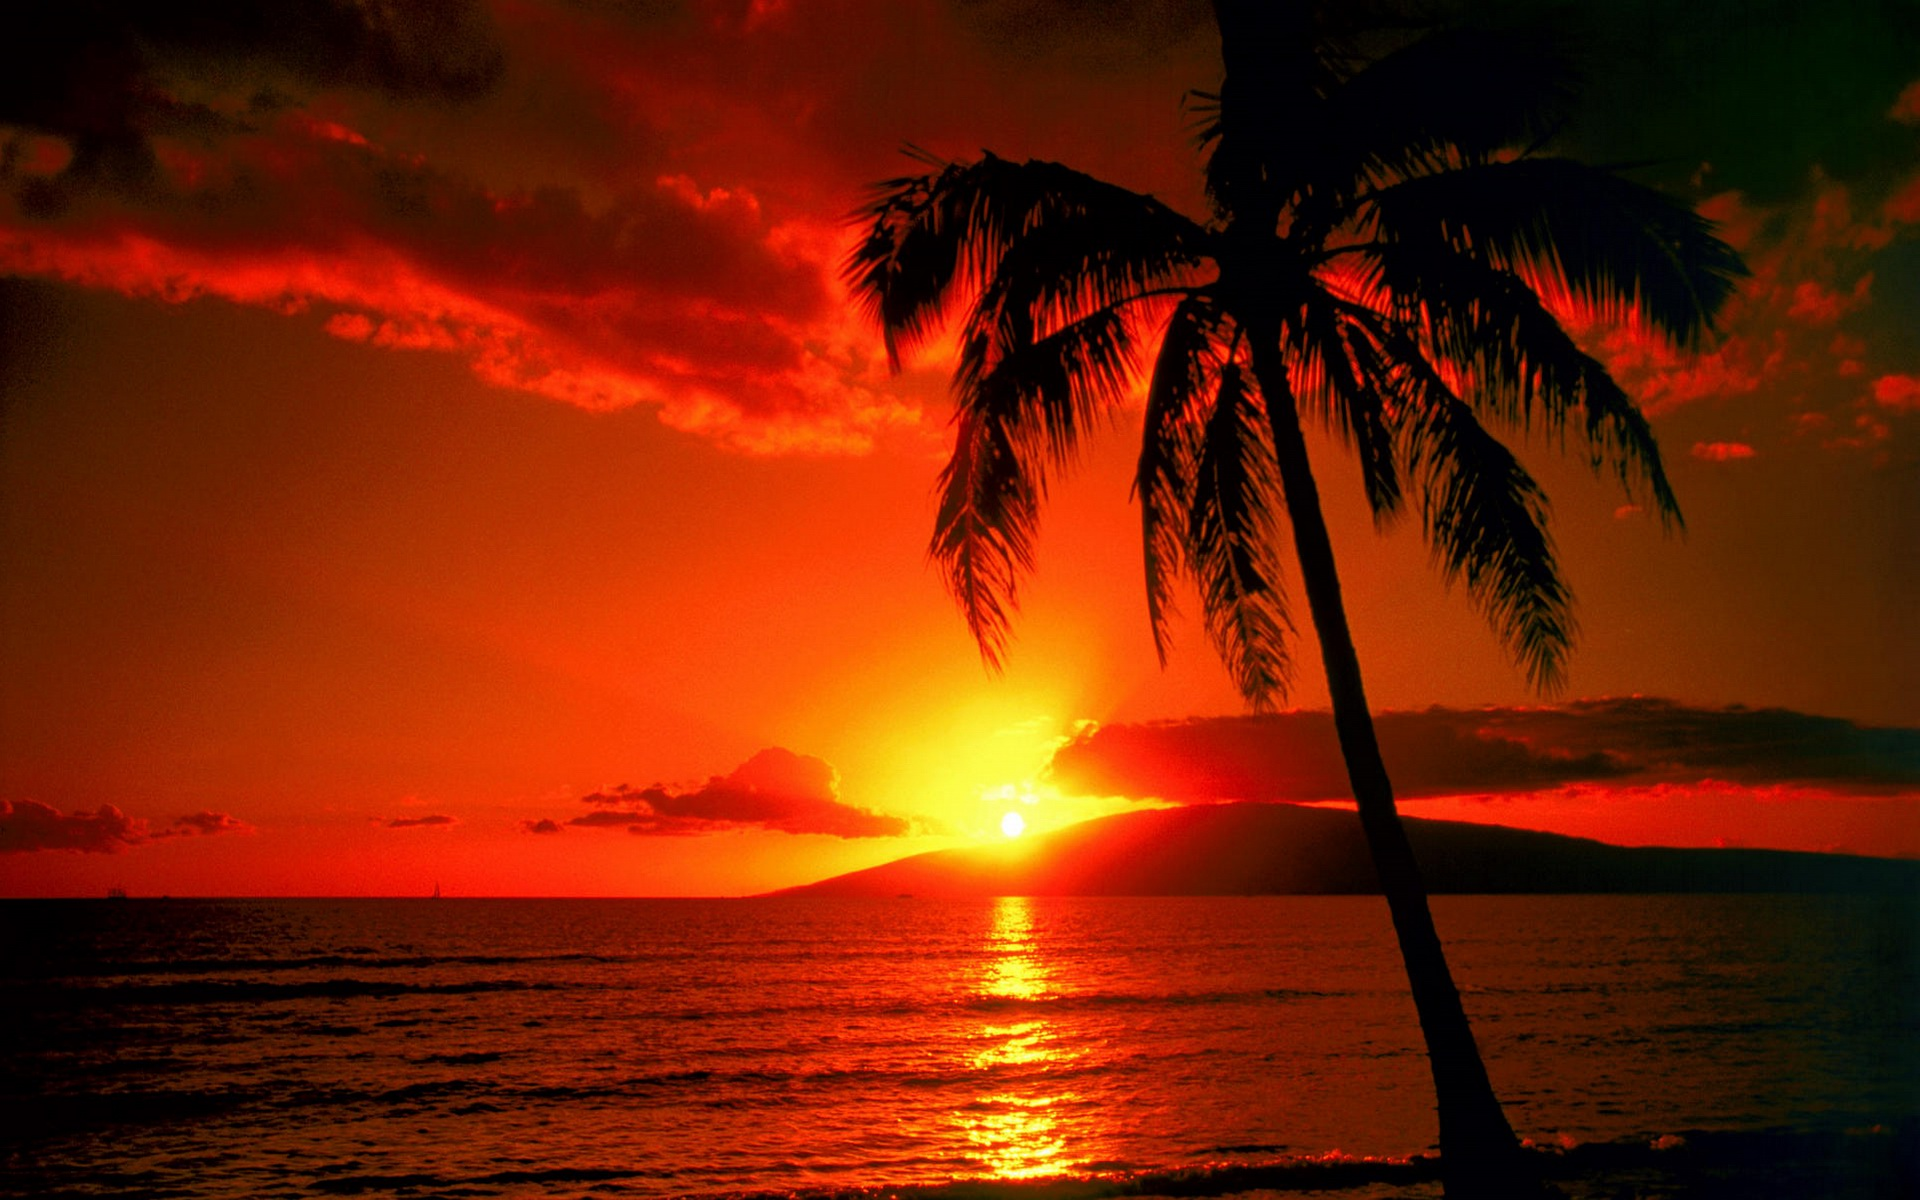 sunset hd wallpapers beach sunset backgrounds top natural scene images